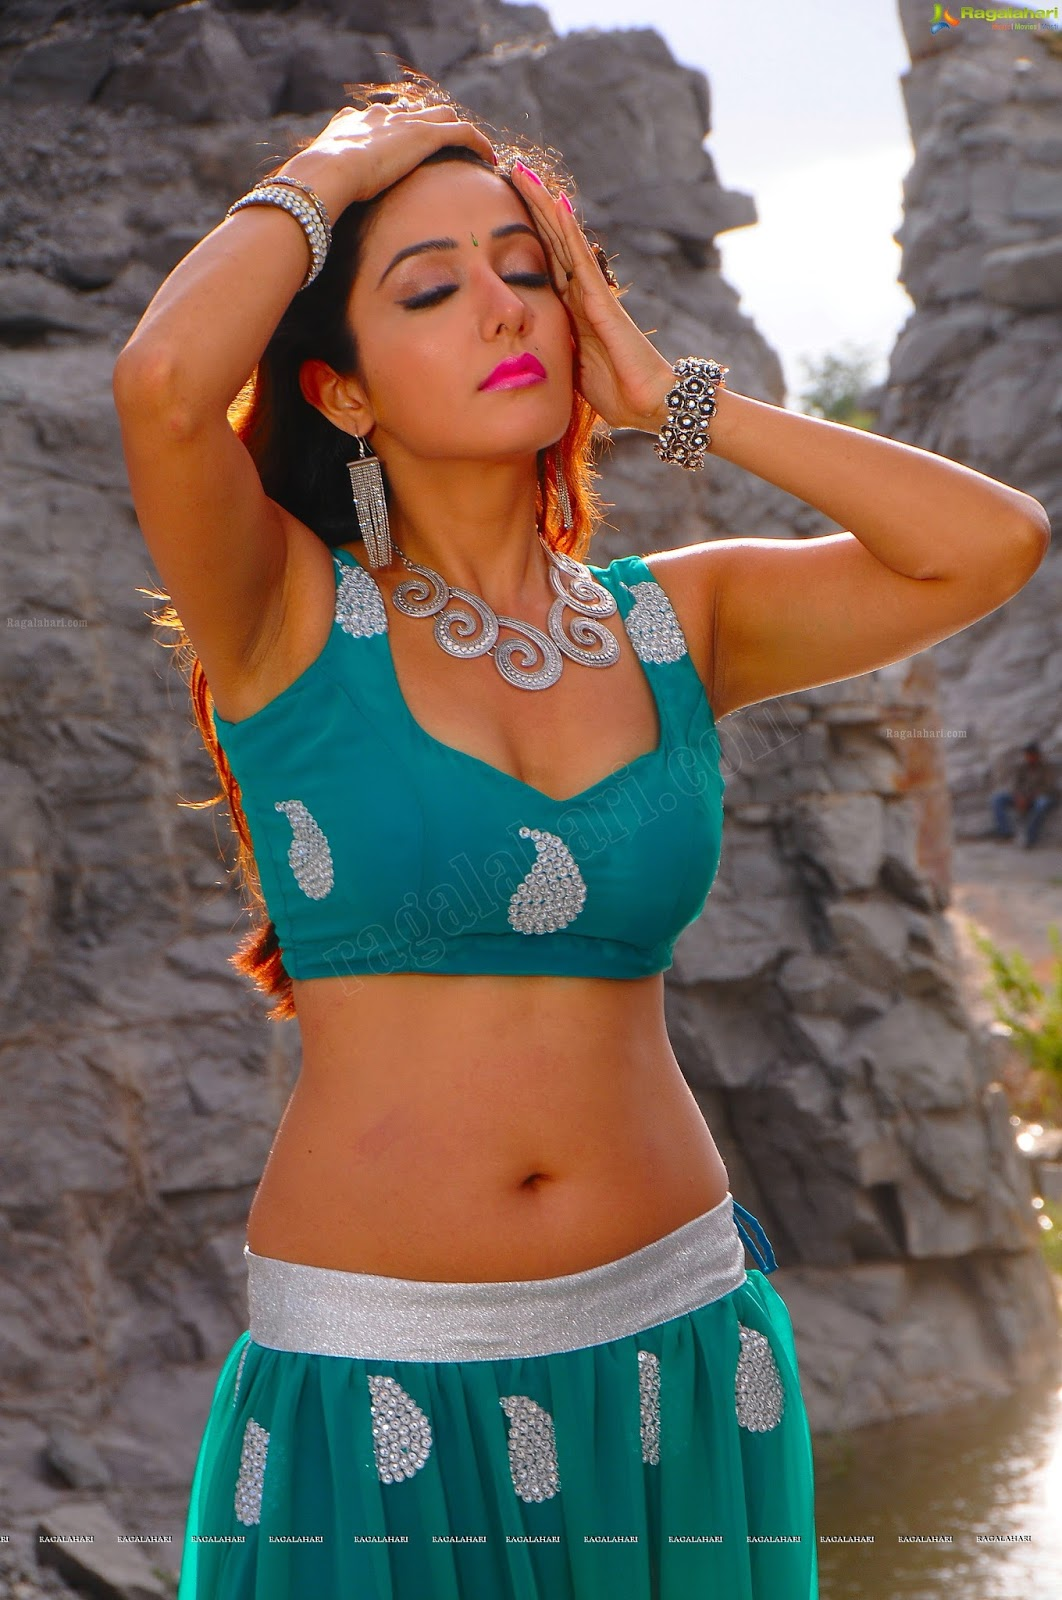 Armpit Actress Photo Sonia Mann Smoking Hot  Spicy -3183